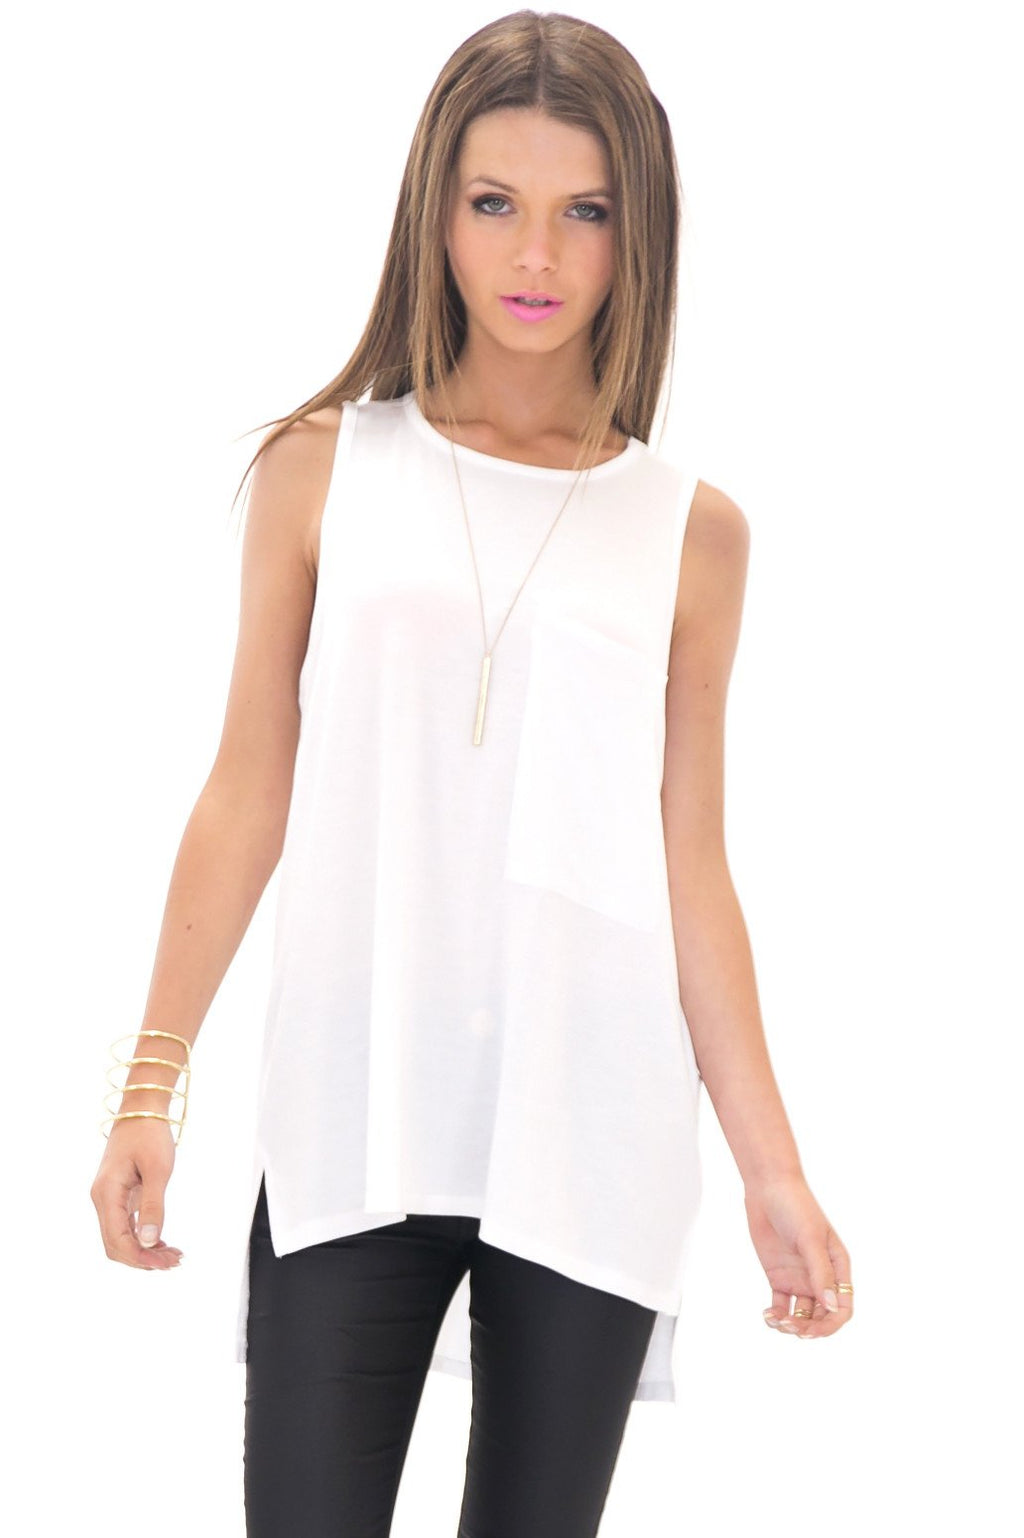 ALEXANDER LARGE POCKET TANK - Haute & Rebellious